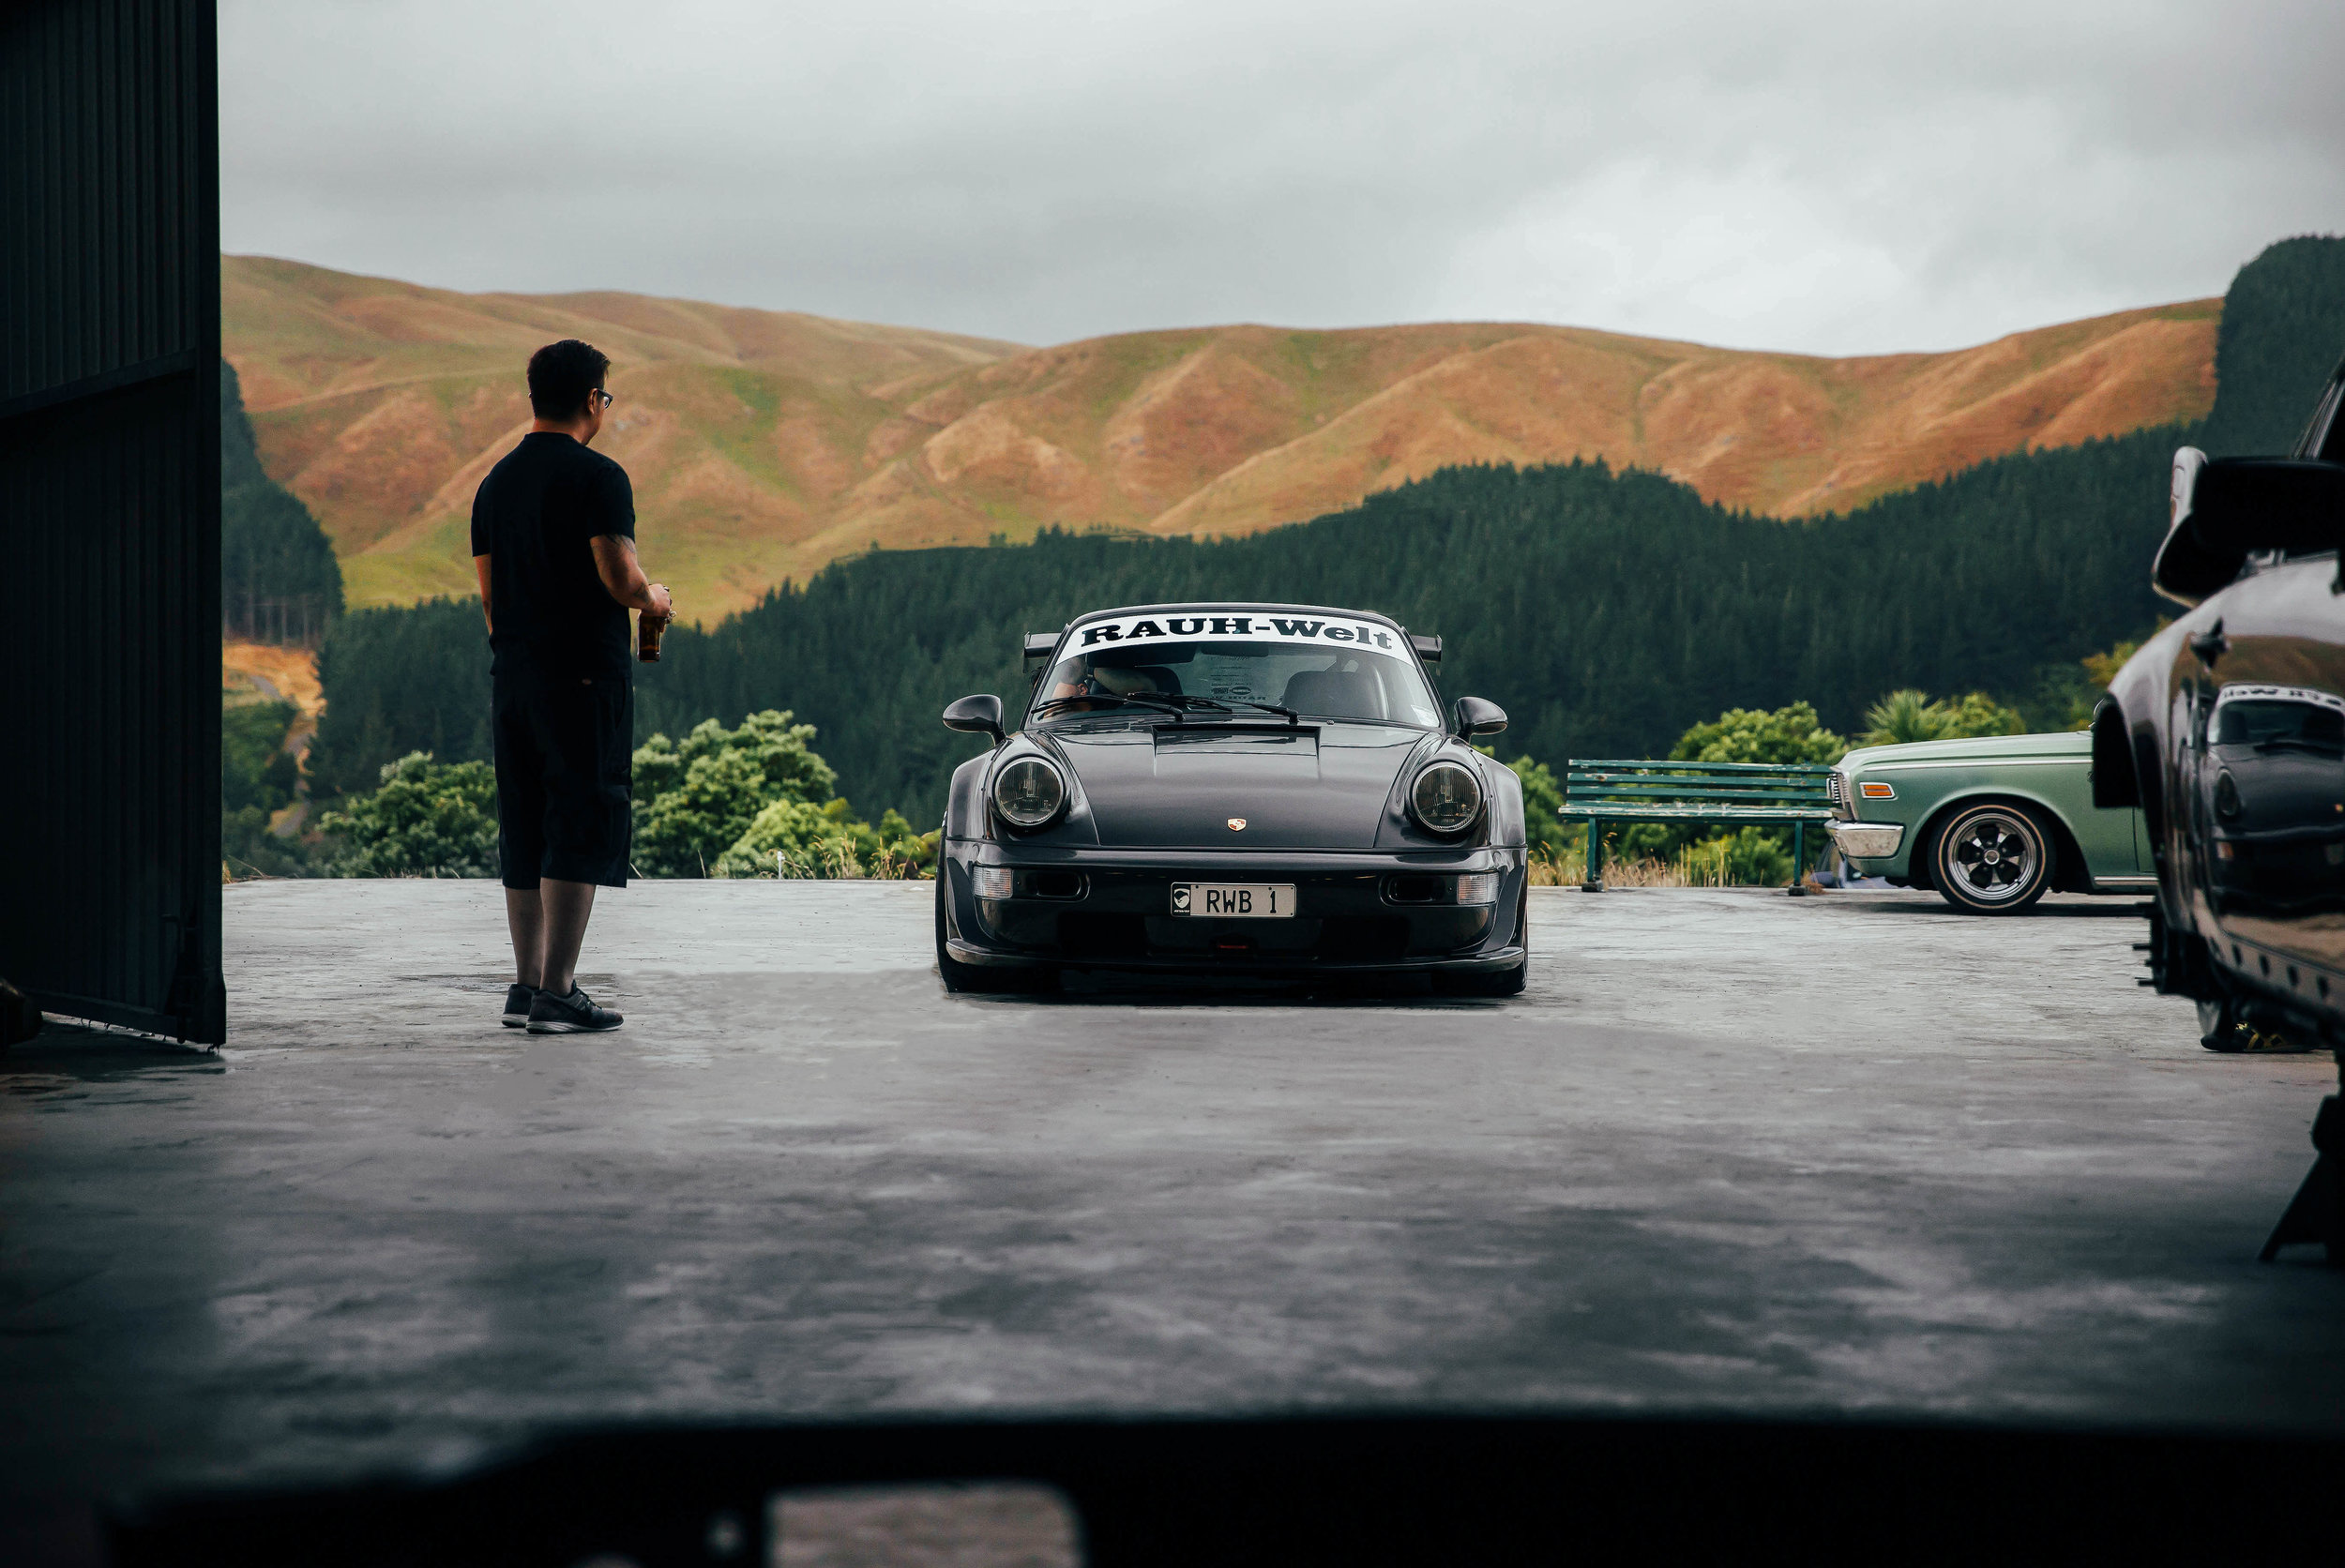 One of my favourite photos of Christian and 'Wakaito'. This was taken in the early hours of the RWB NZ build.